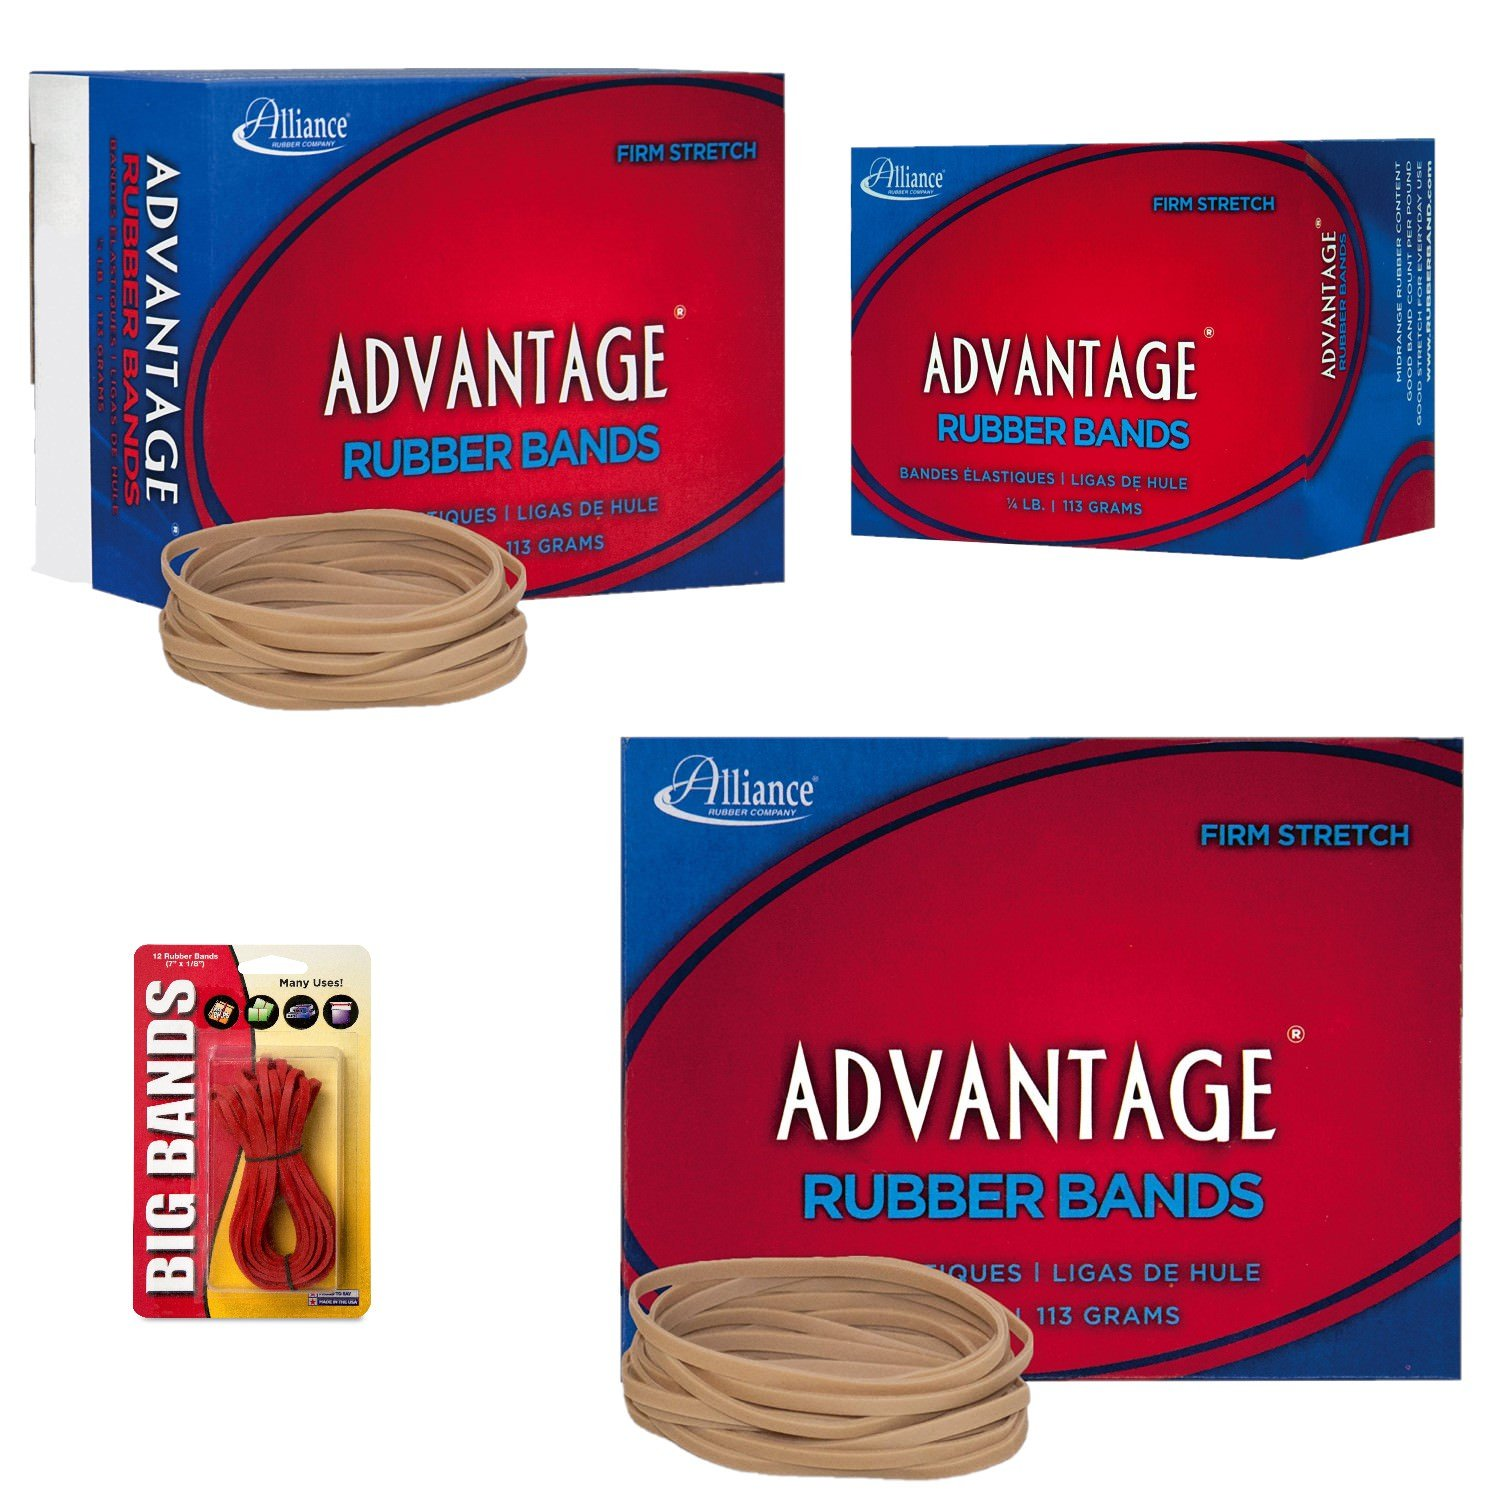 Alliance Rubber 26339 Advantage Rubber Bands Size #33, 1/4 lb Box Contains Approx. 350 Bands (3 1/2'' x 1/8'', Natural Crepe) Bundle with 12 Big Rubber Bands